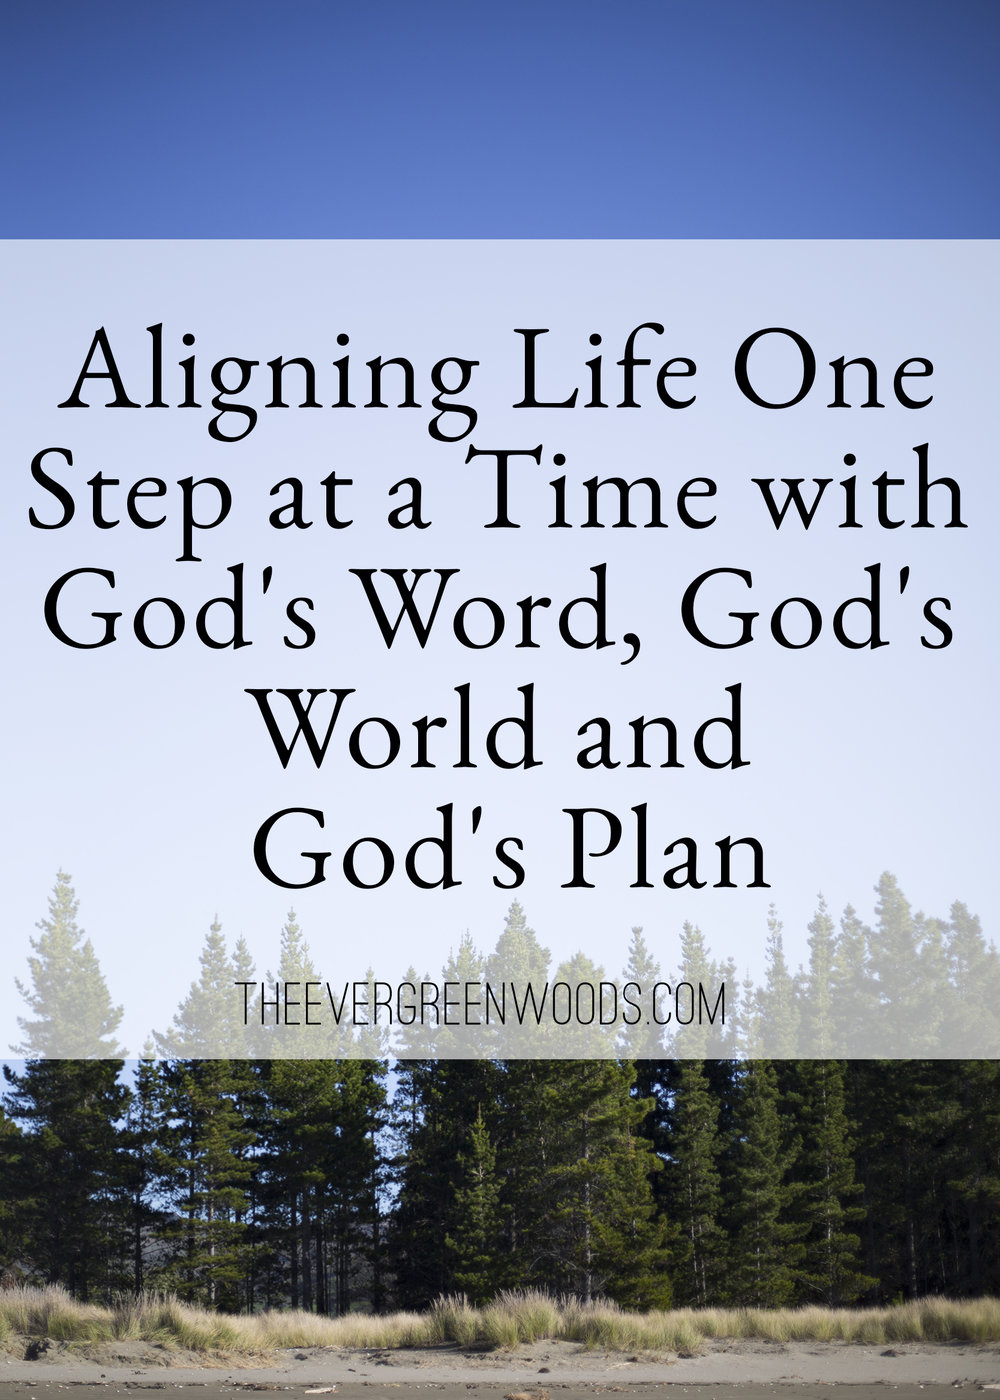 Aligning Life One Step at a Time with God's Word, God's World and God's Plan.jpg